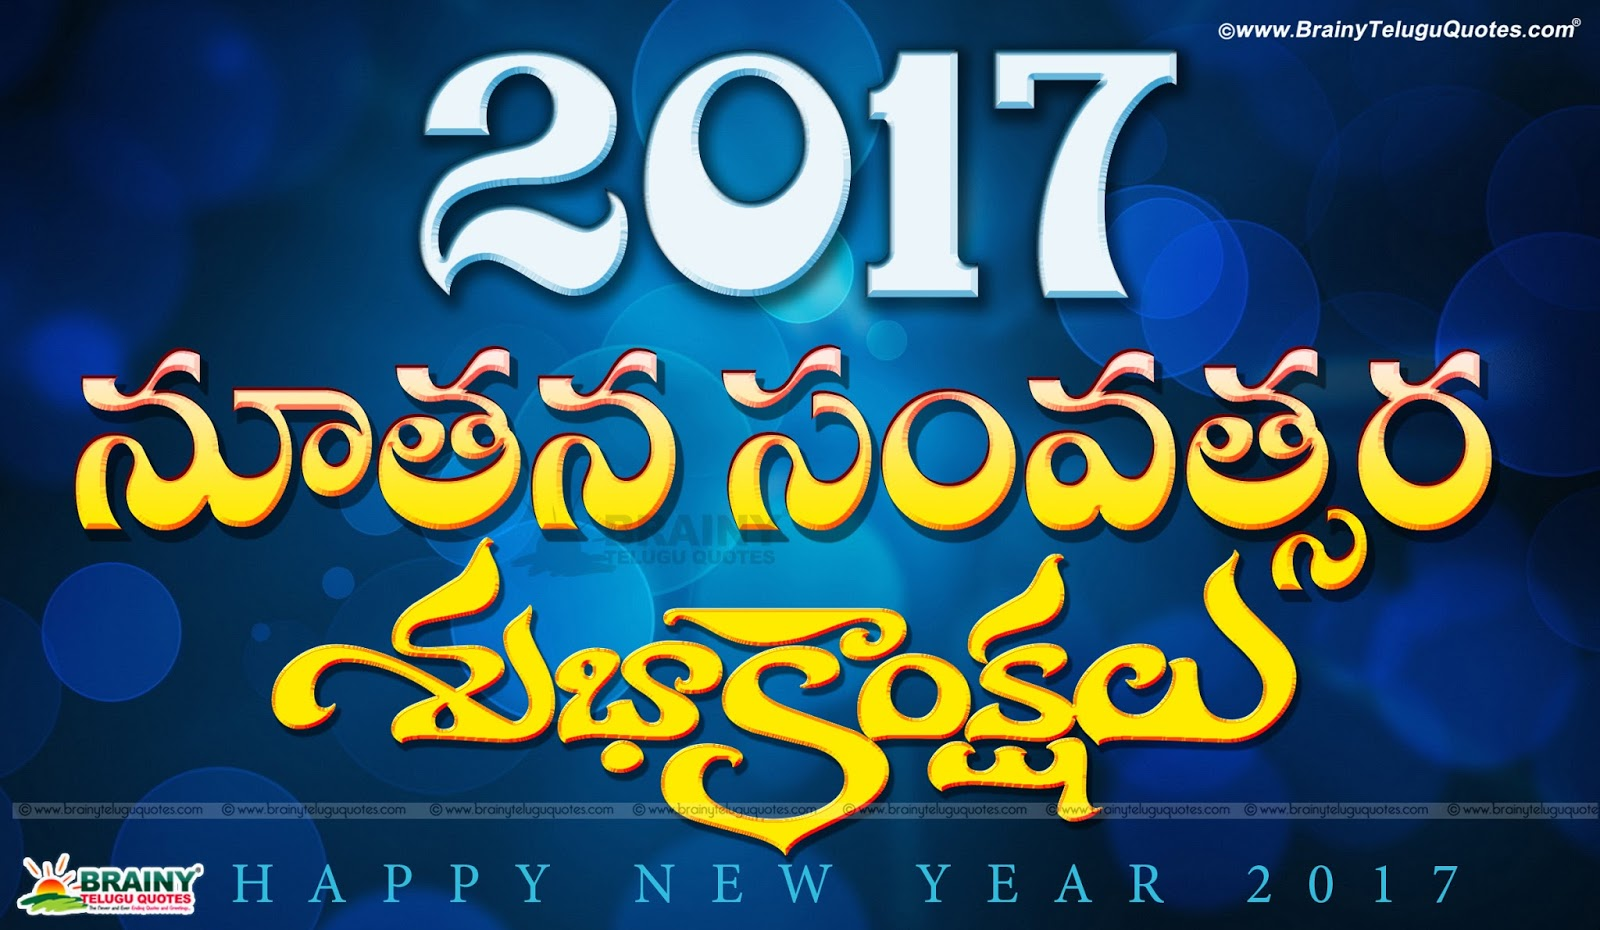 Telugu happy new year 2017 greetings designs brainyteluguquotes telugu latest best happy new year 2017 greetings with hd wallpapers motivational happy new year greetings best latest 2017 new year design telugu new kristyandbryce Image collections